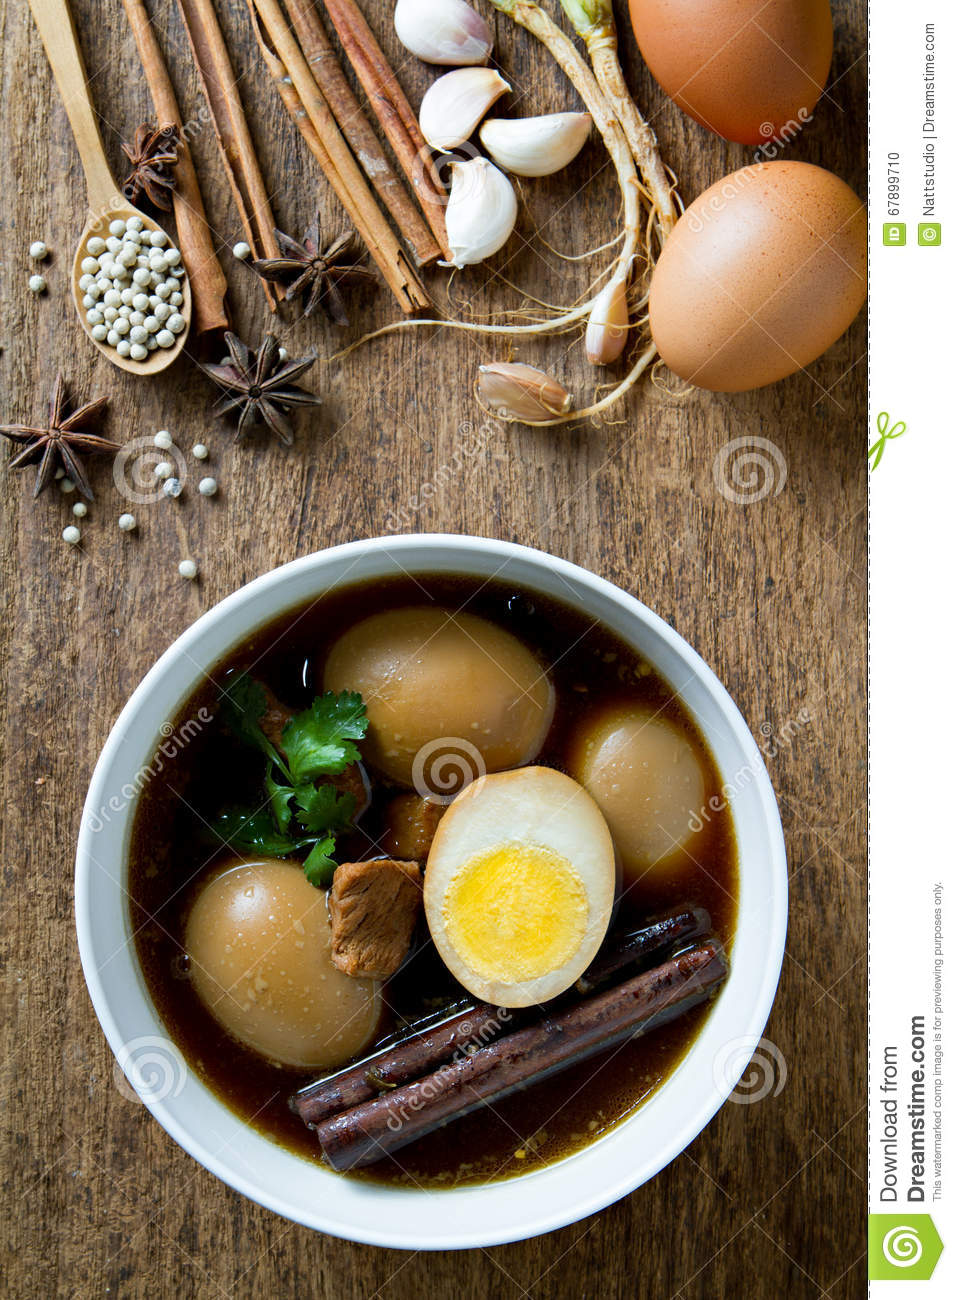 Eggs boiled in the gravy with spices on wooden background for 8 spices thai cuisine